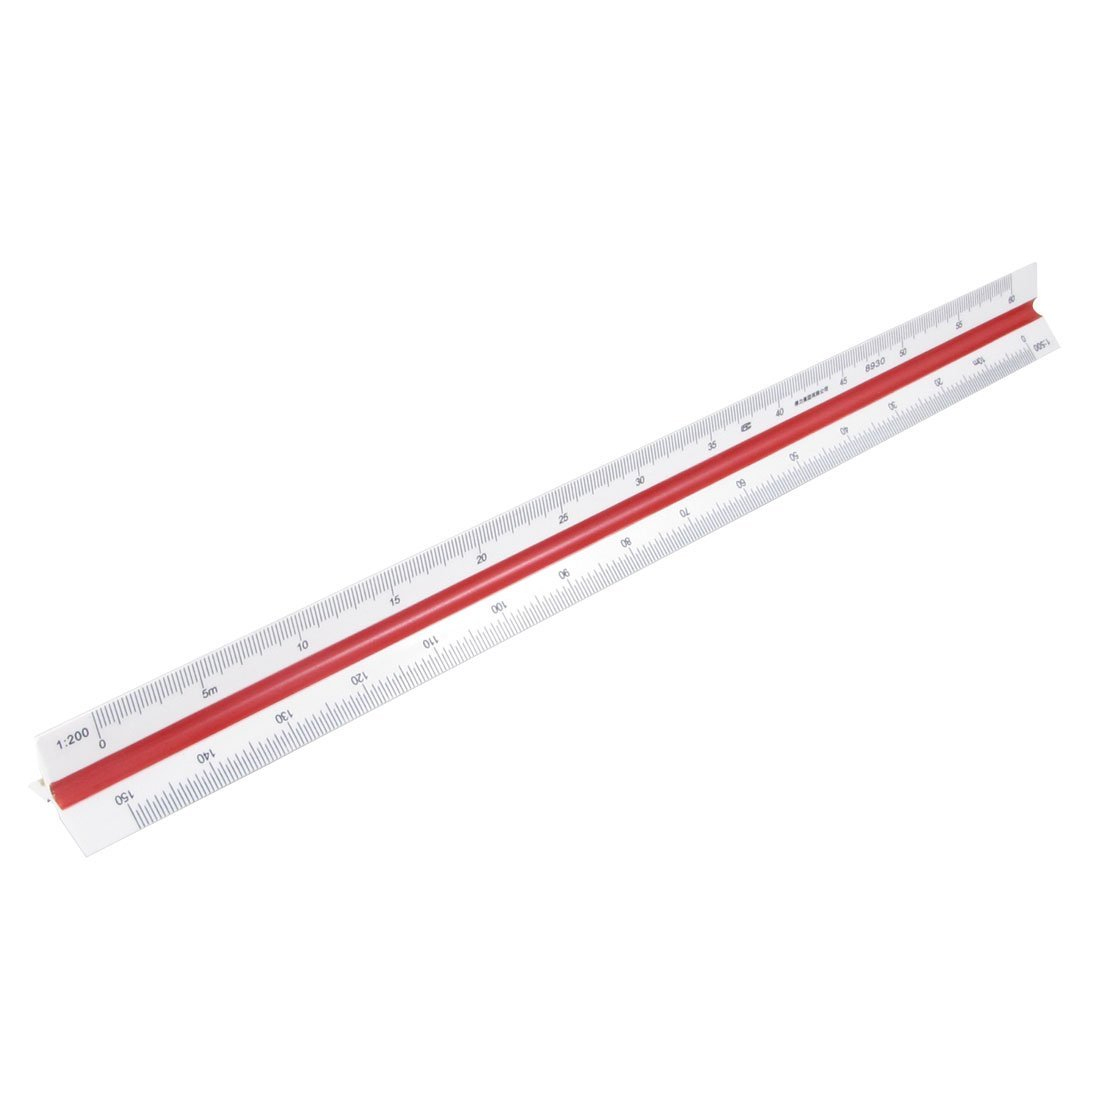 Details About Plastic Triangular Scale Ruler 1:100 1:200 1:250 1:300 1:400  Hy